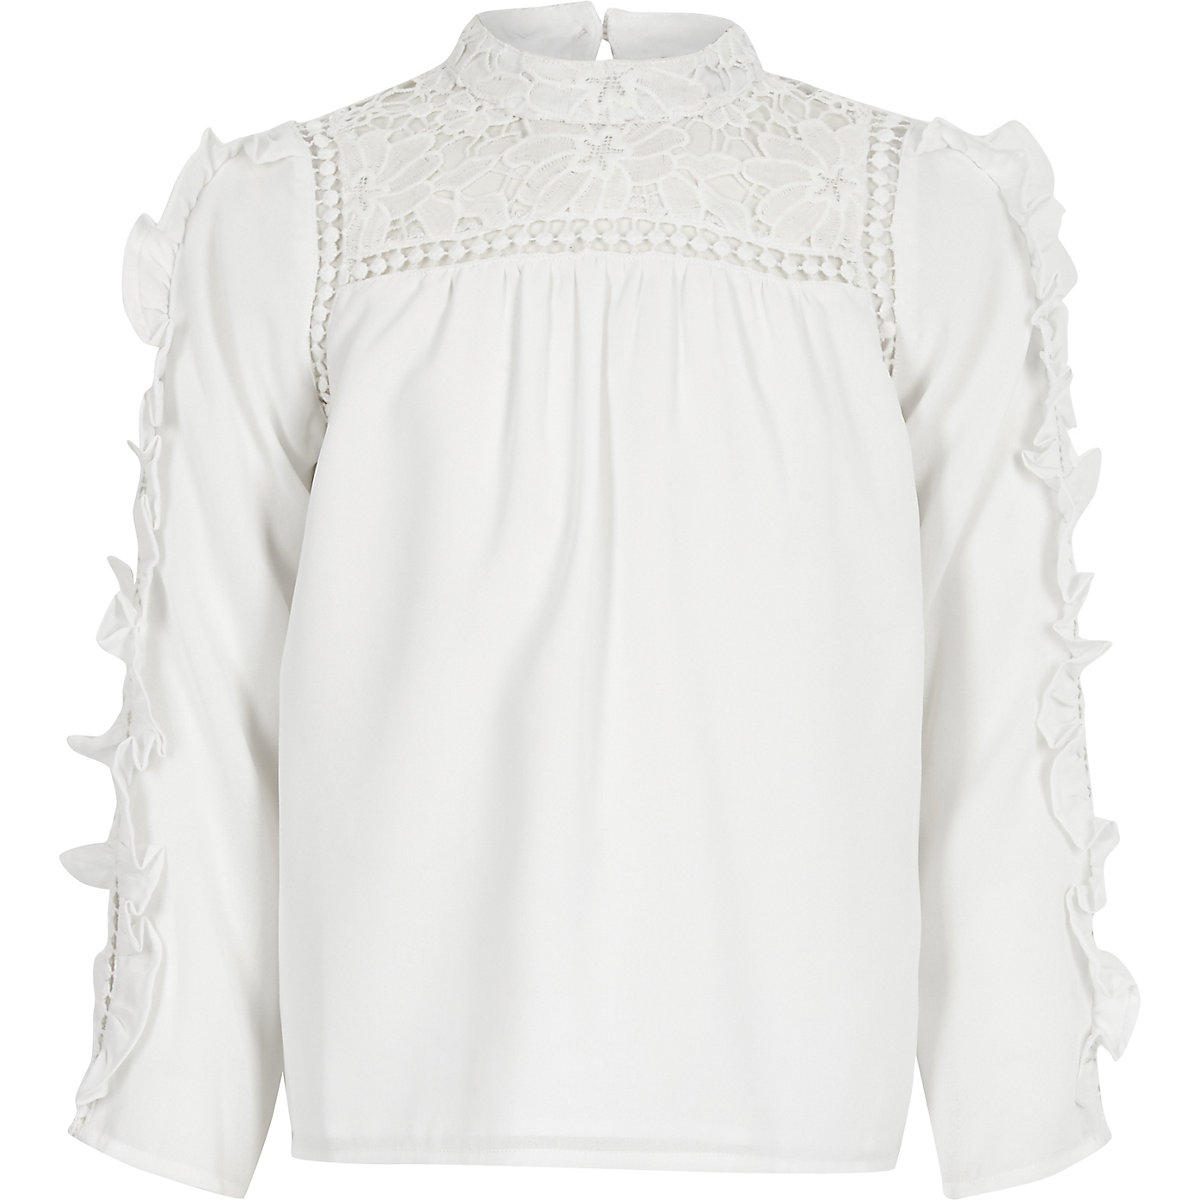 c7015016c7c521 Girls white lace frill sleeve top - Long Sleeve Tops - Tops - girls